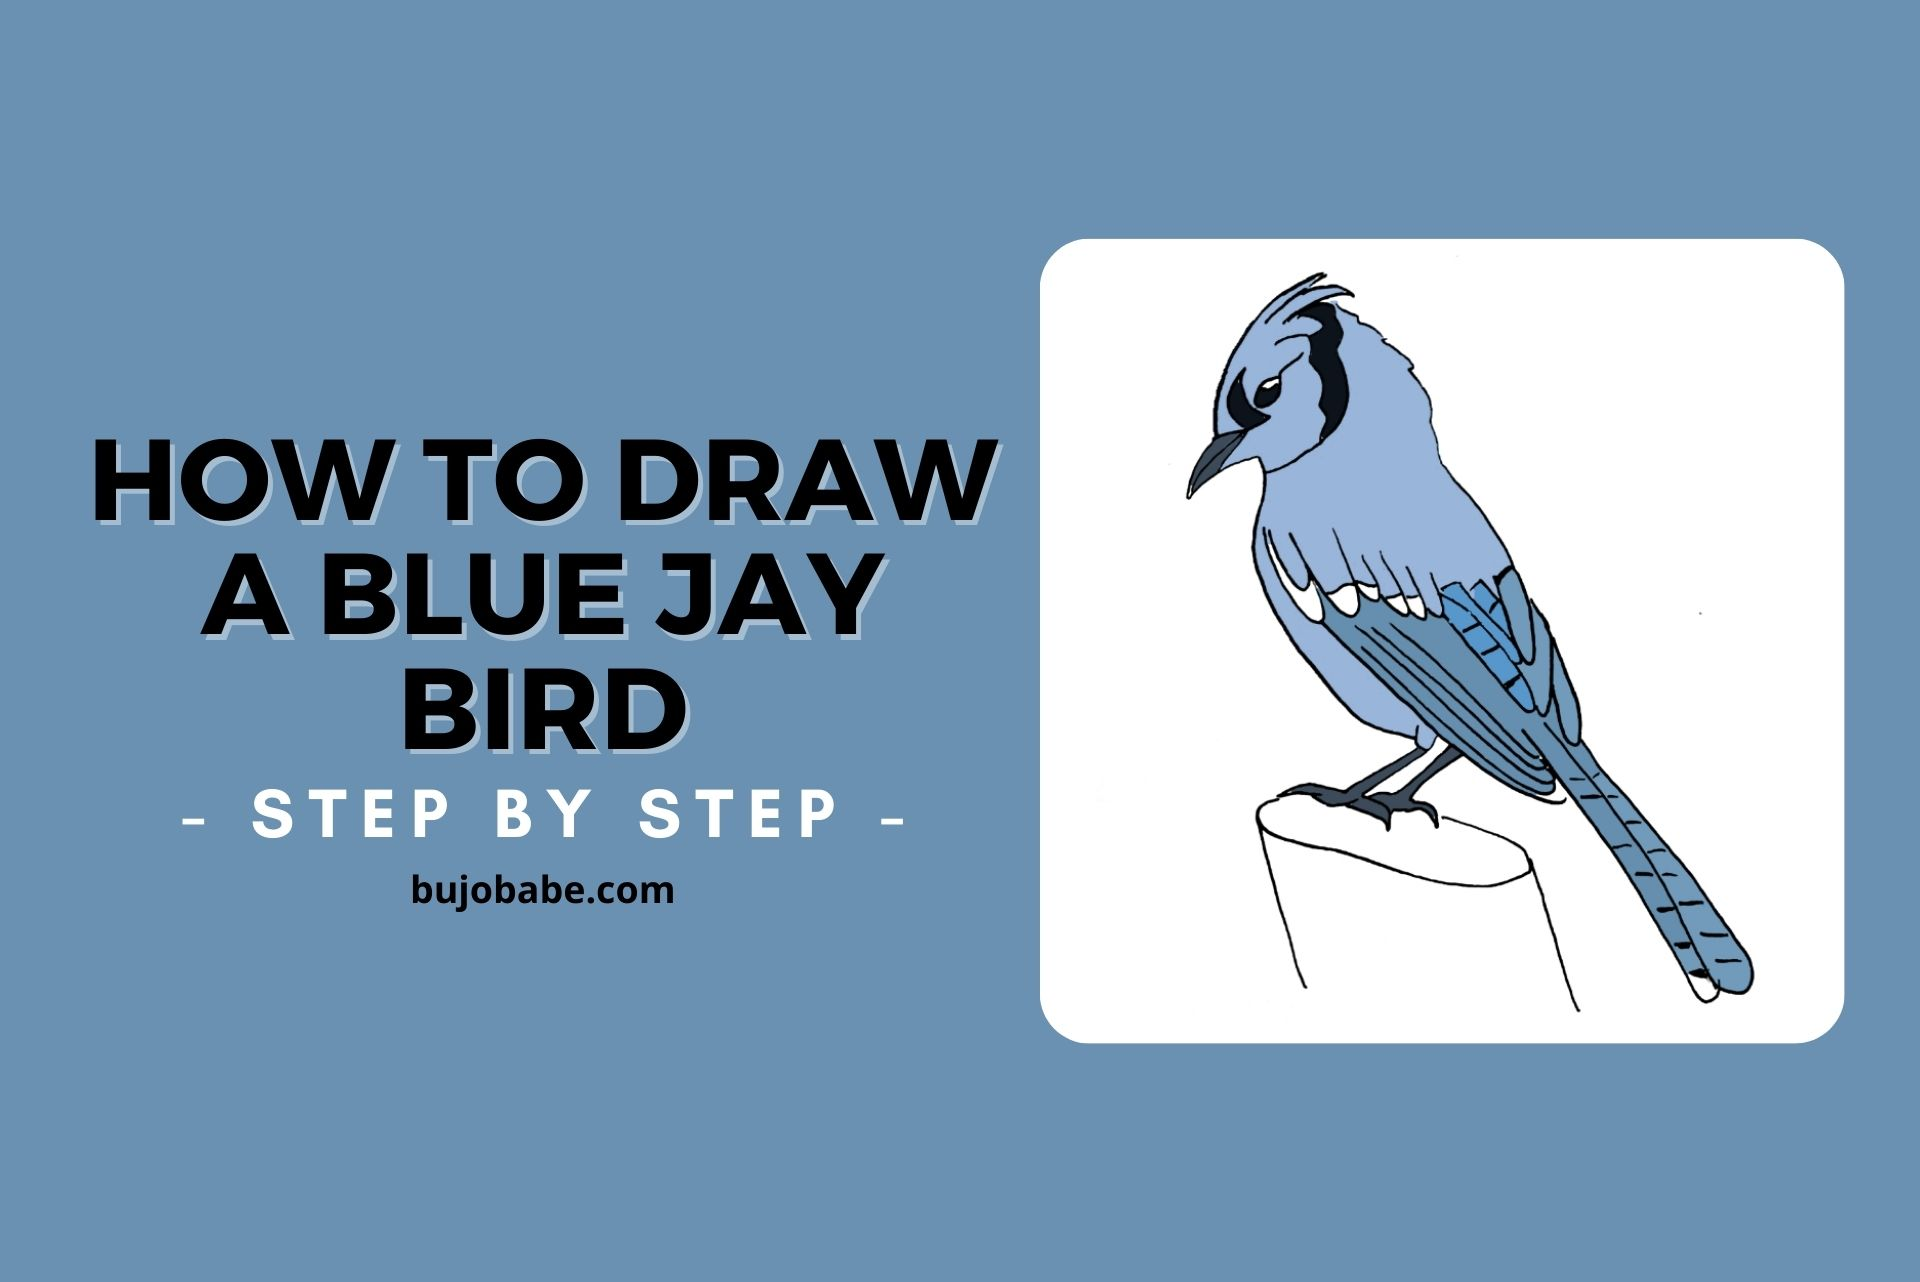 how to draw a blue jay bird step by step